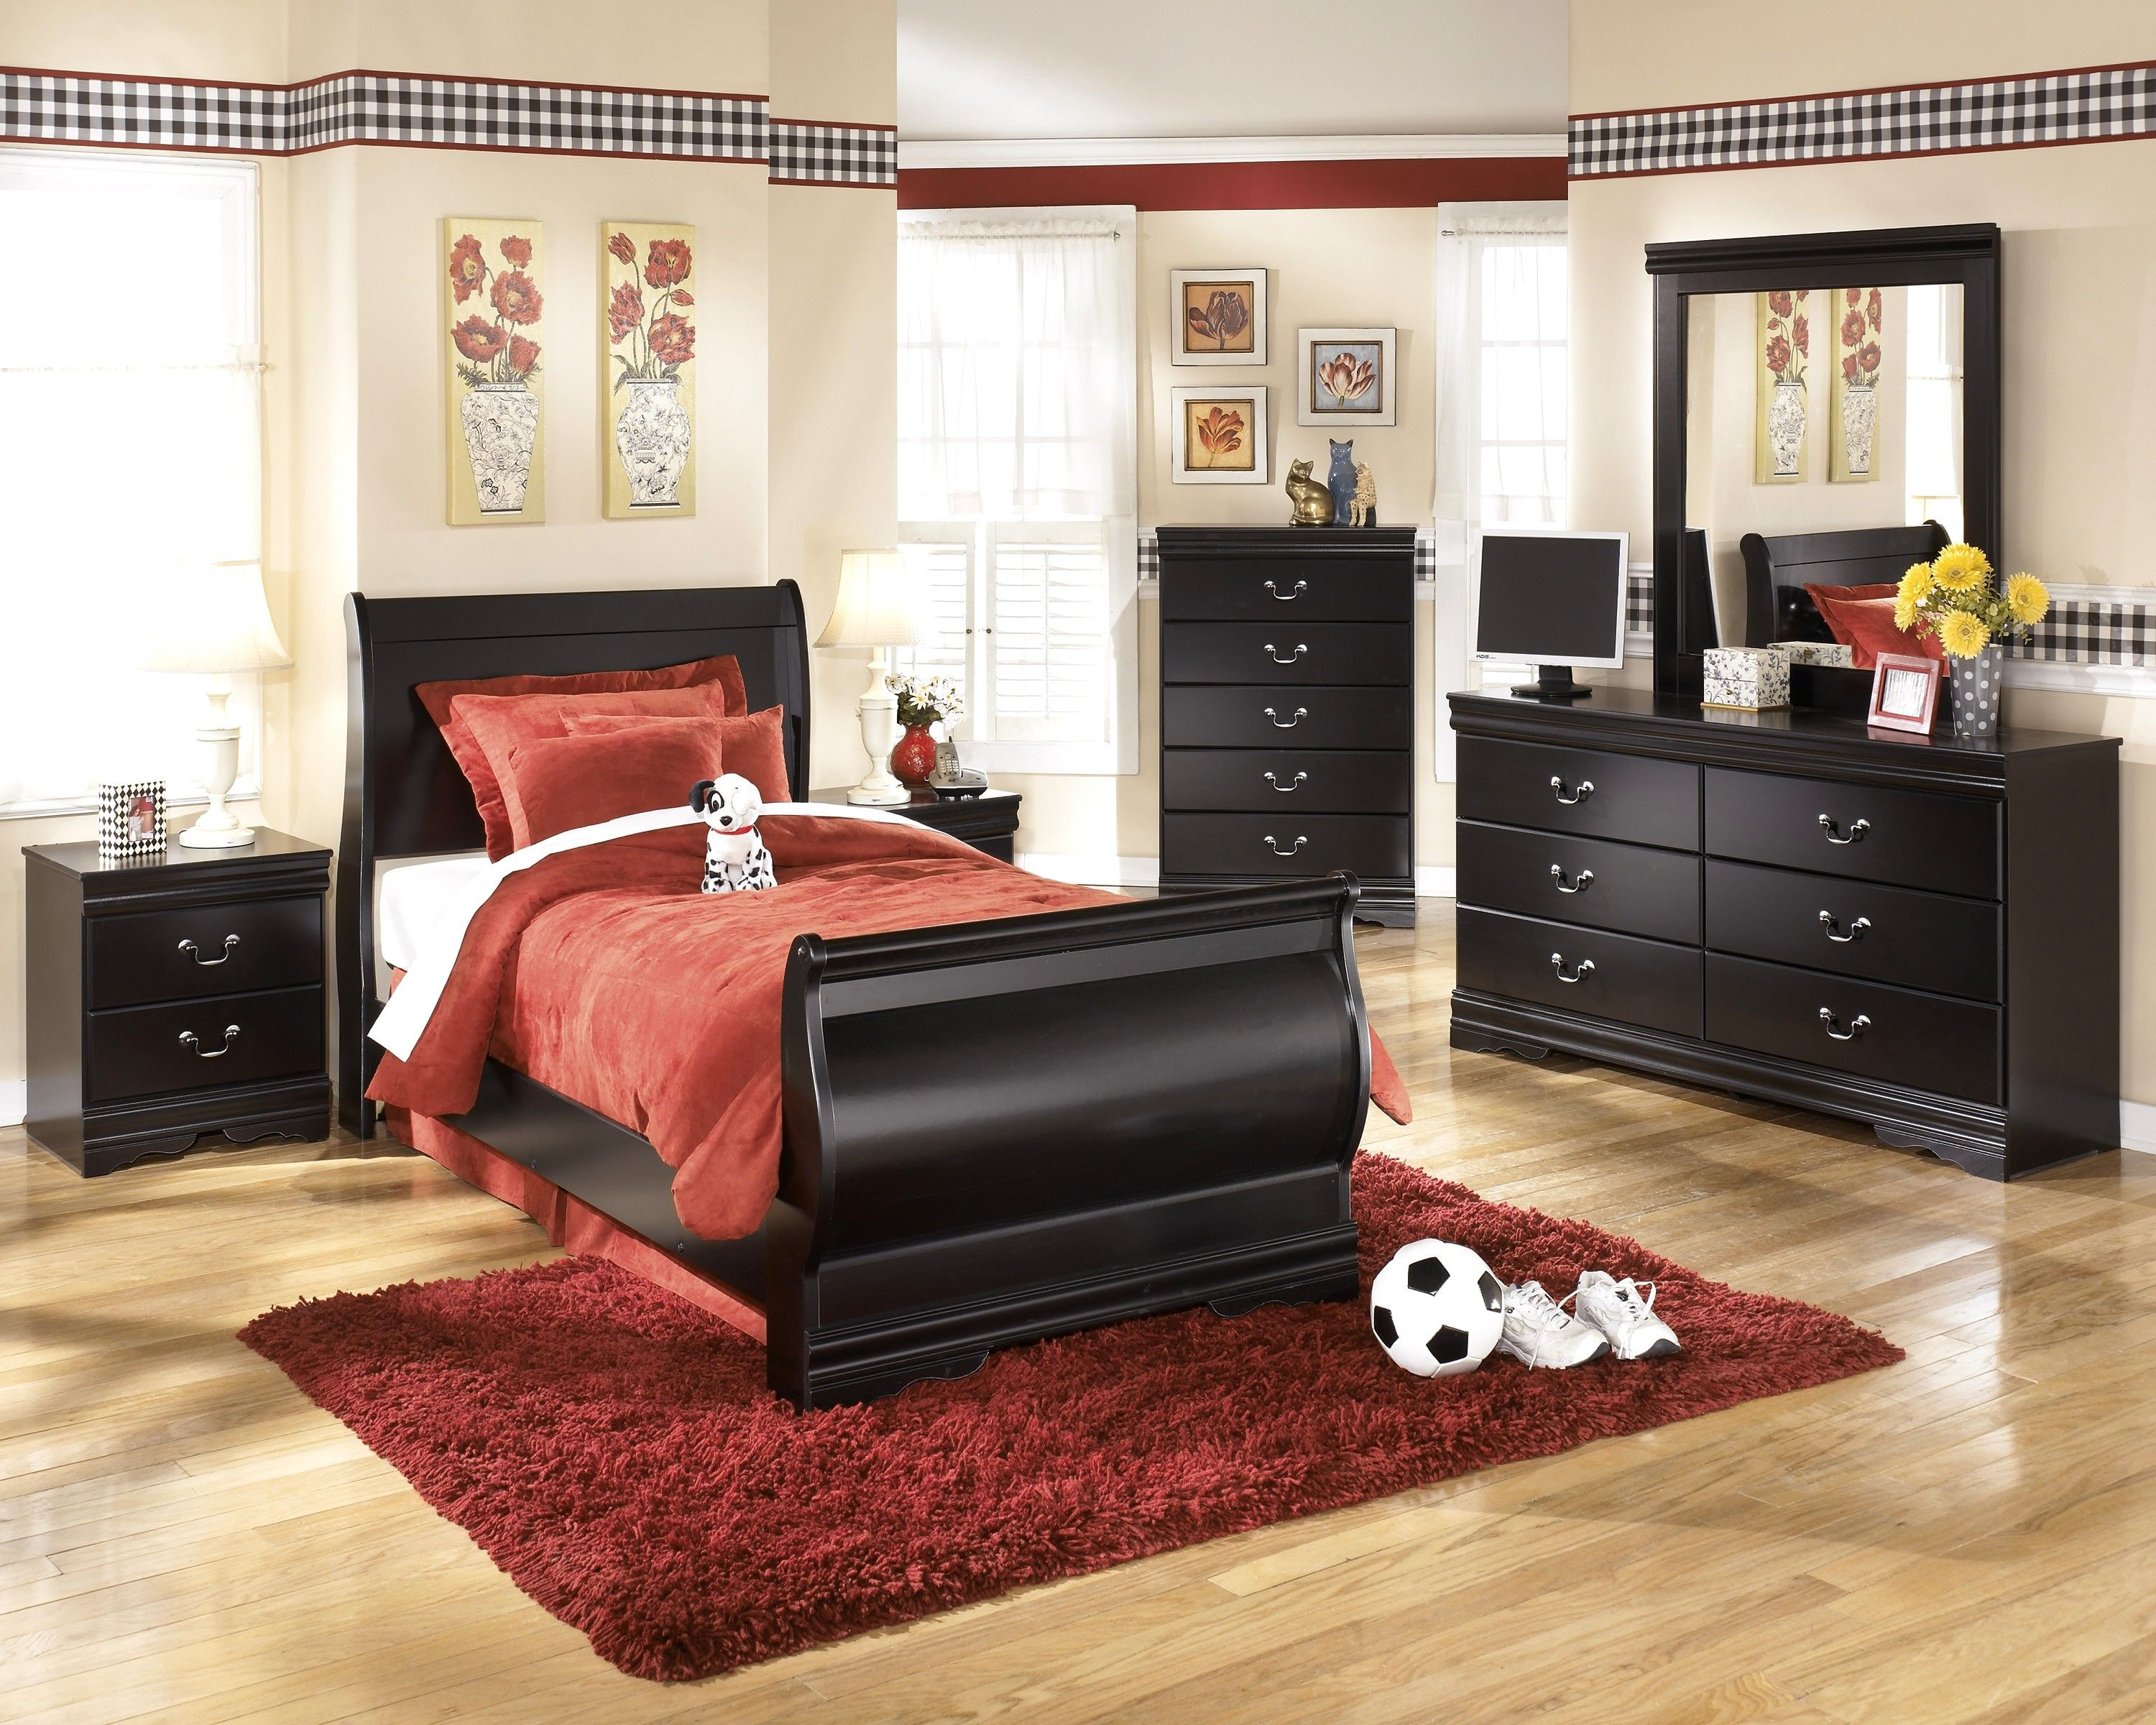 Enchanting Twin Bedroom Set With Red Fur Area Rug And Laminate New Twin Bedroom Sets Design Inspiration